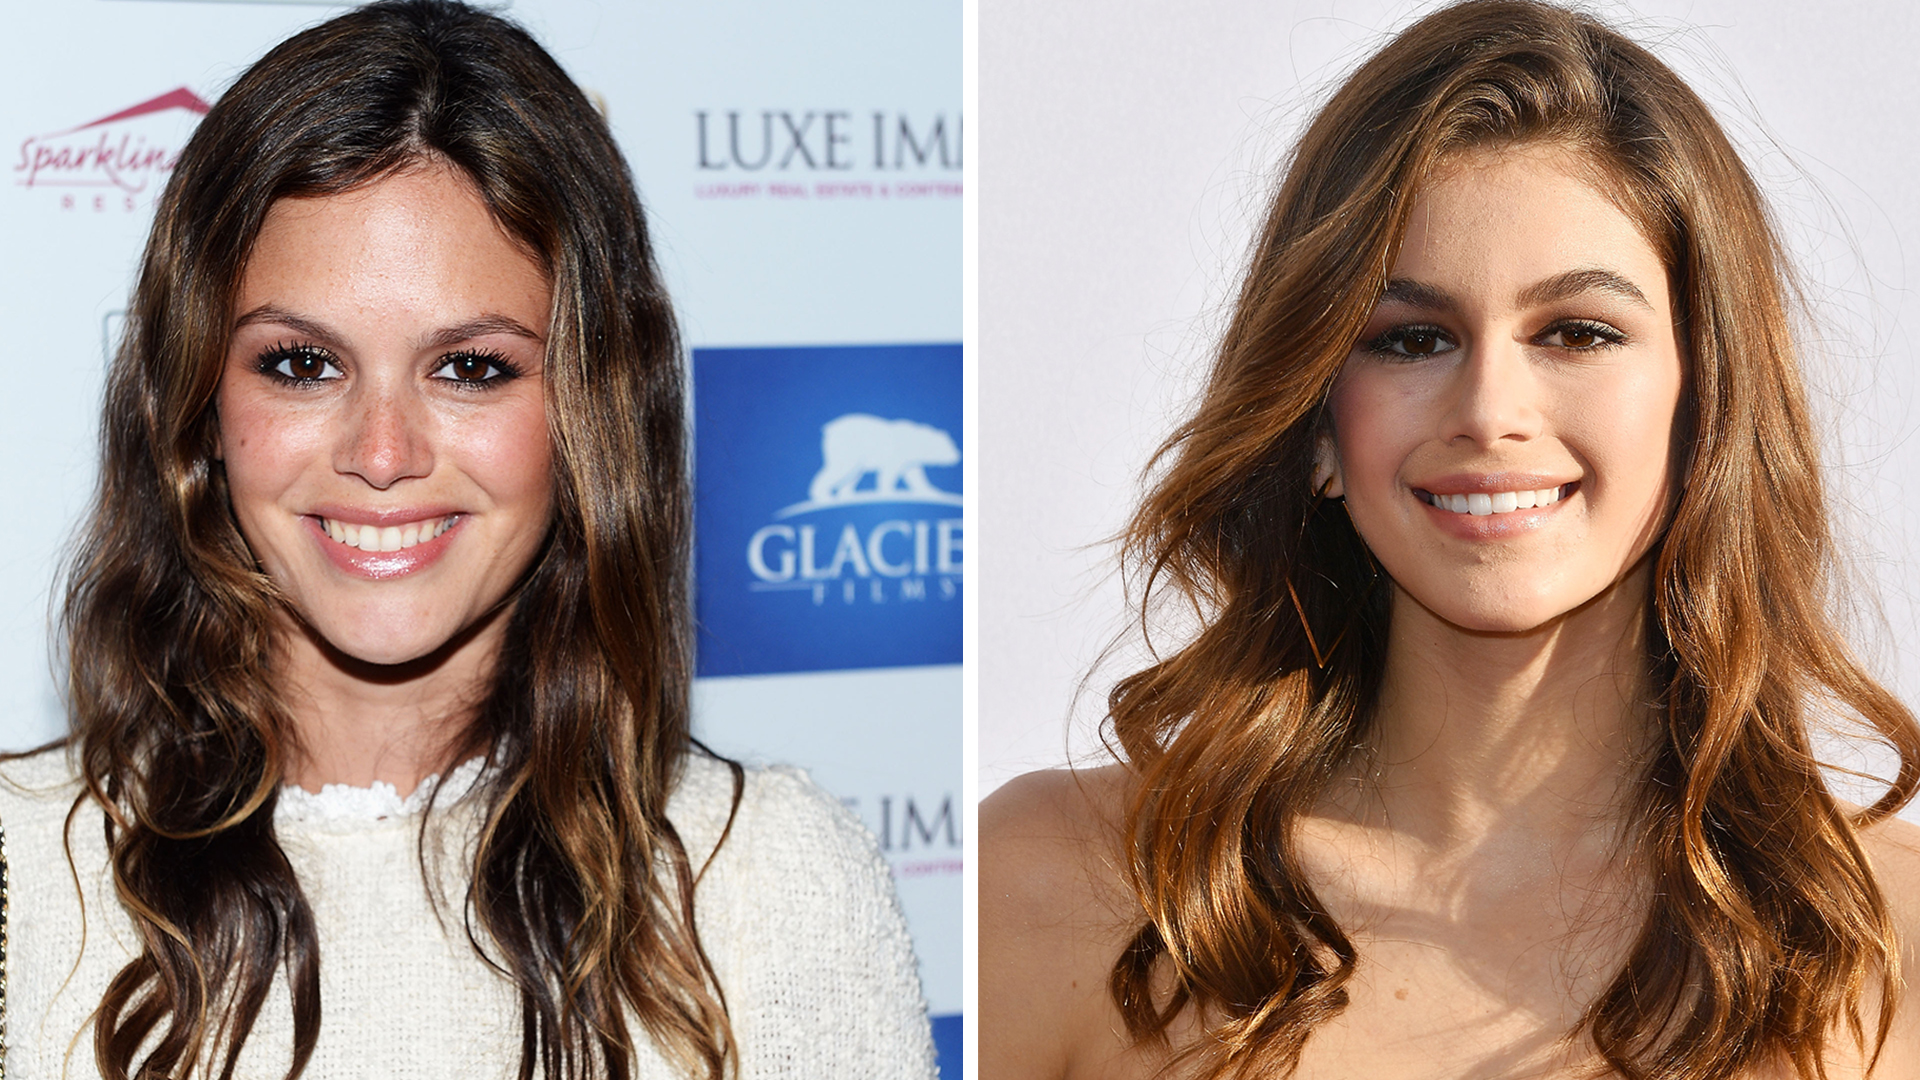 Celebrity doppelgangers of the past